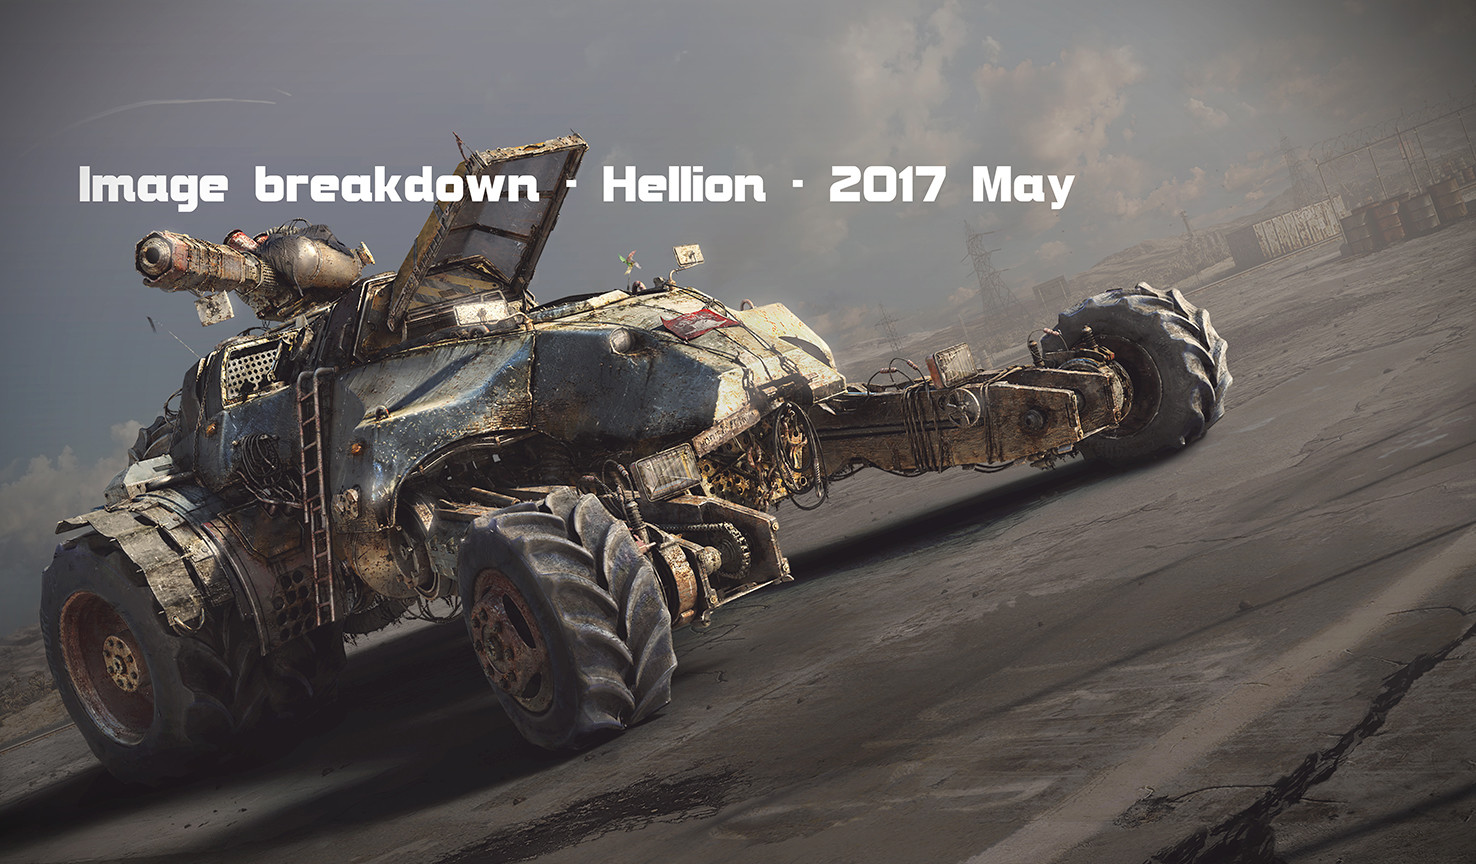 Image breakdown - Hellion - 2017 May ( no descriptions)